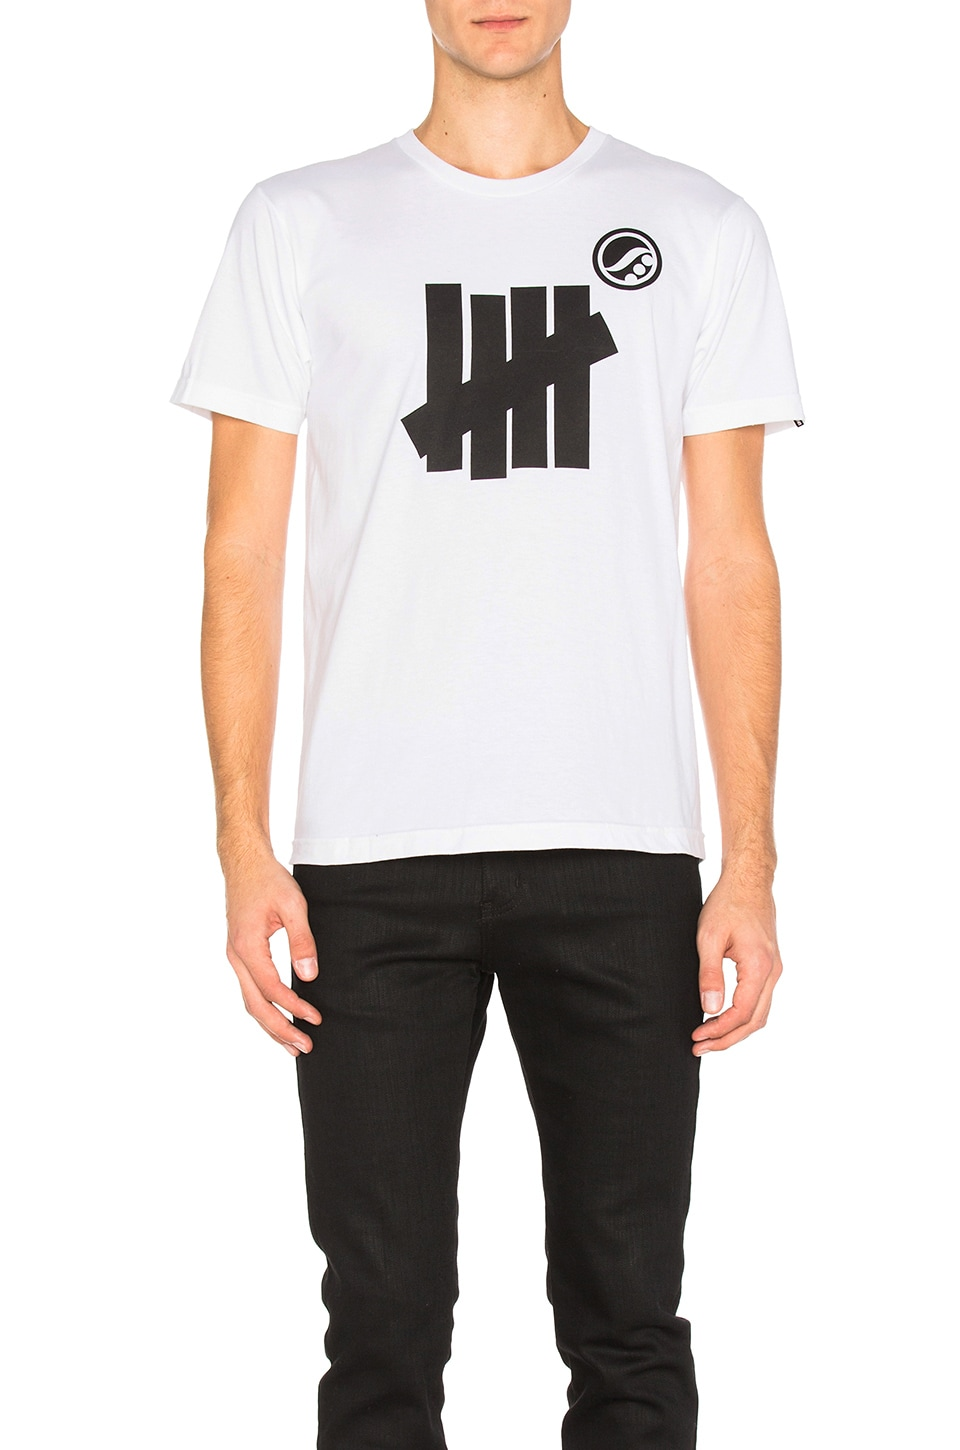 Undefeated x Shoyoroll SYR Strike Tee in White